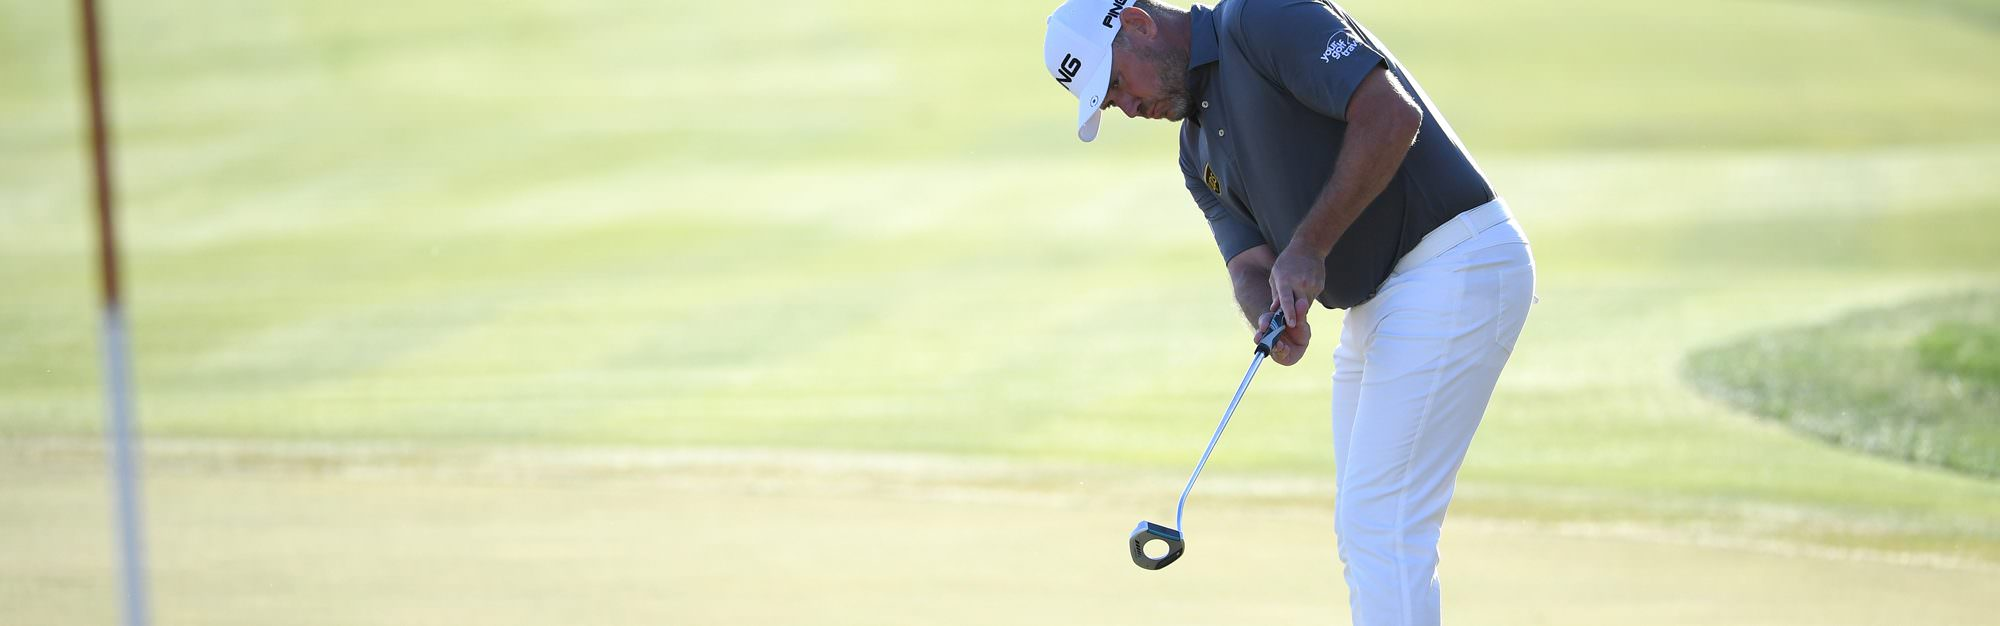 Tour pros are switching to the claw grip – should you?